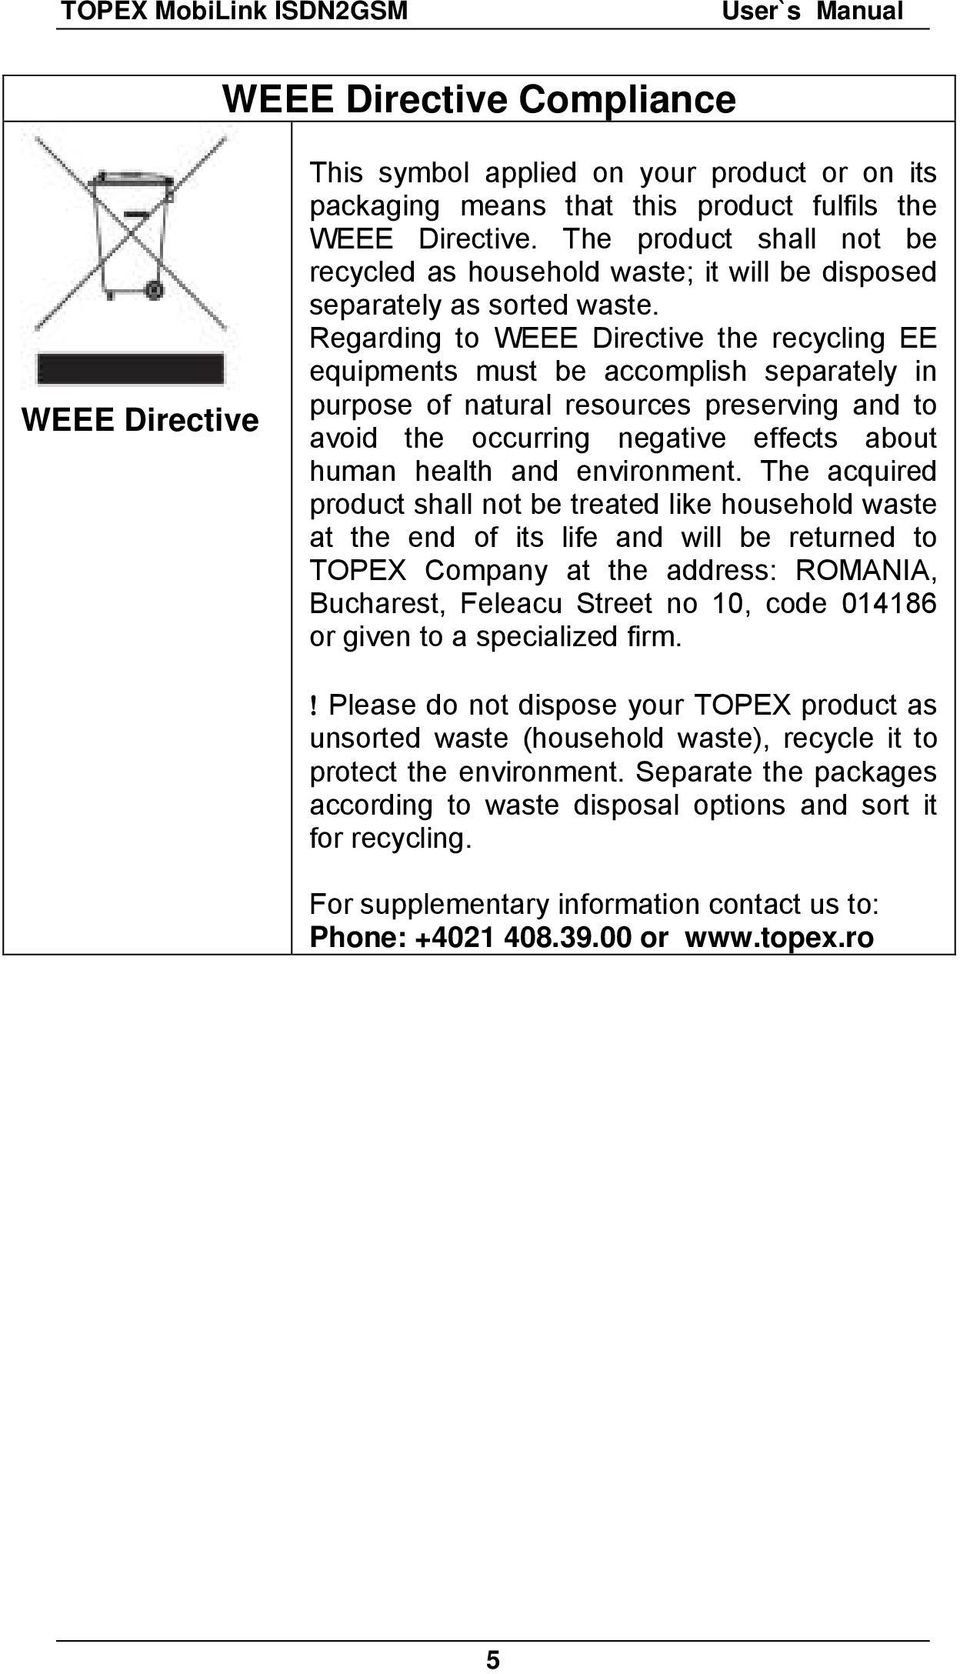 Regarding to WEEE Directive the recycling EE equipments must be accomplish separately in purpose of natural resources preserving and to avoid the occurring negative effects about human health and